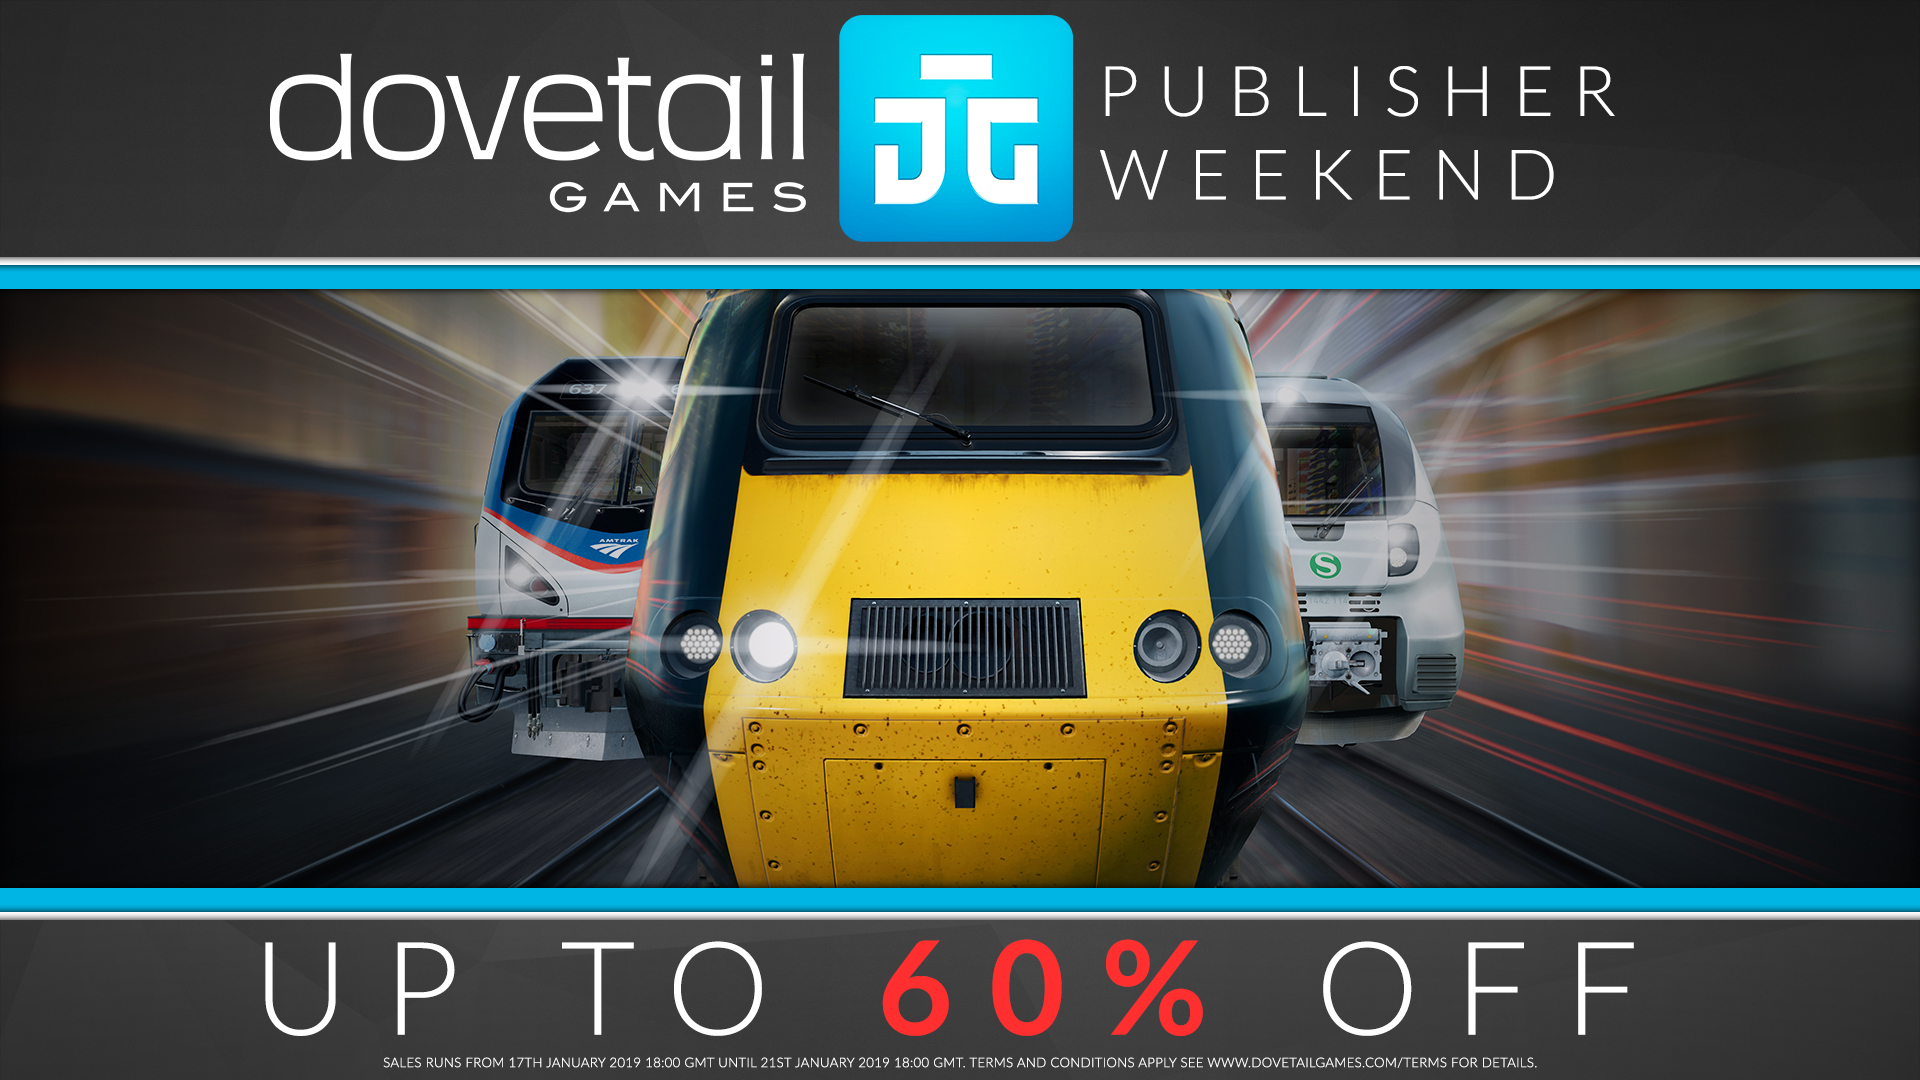 Train Simulator 2019 On Steam Download The Completepackage Including Schematicfirmware Software Dovetail Games Publisher Weekend